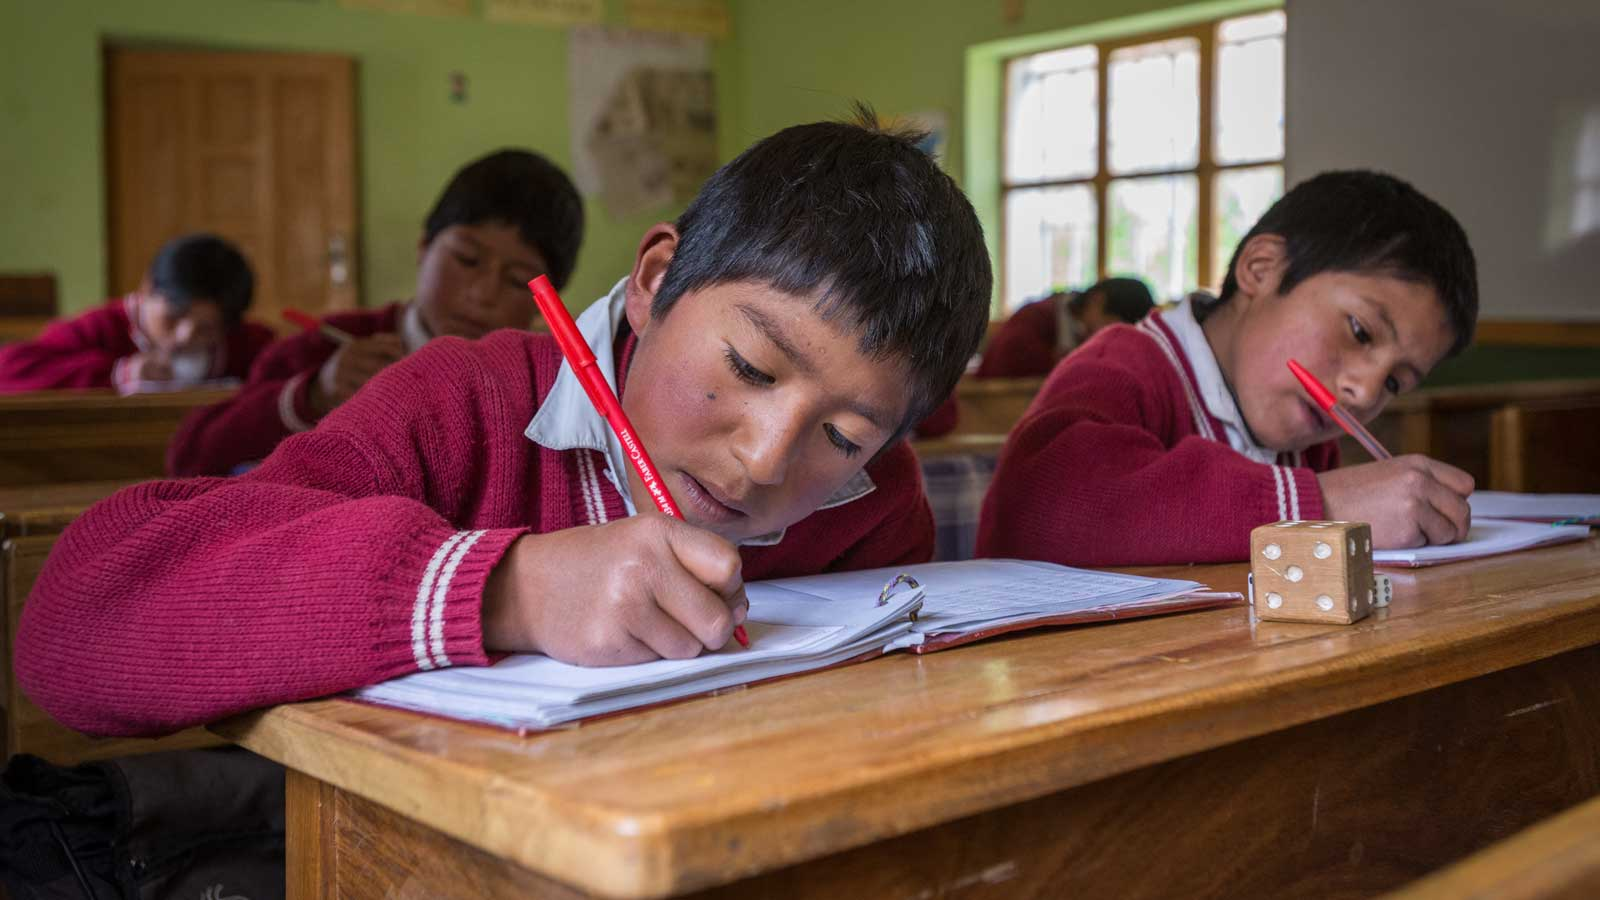 To help education in Bolivia, World Vision helped train elementary school teachers were trained in fun methods for teaching math, language, and reading to help kids improve their academic performance.